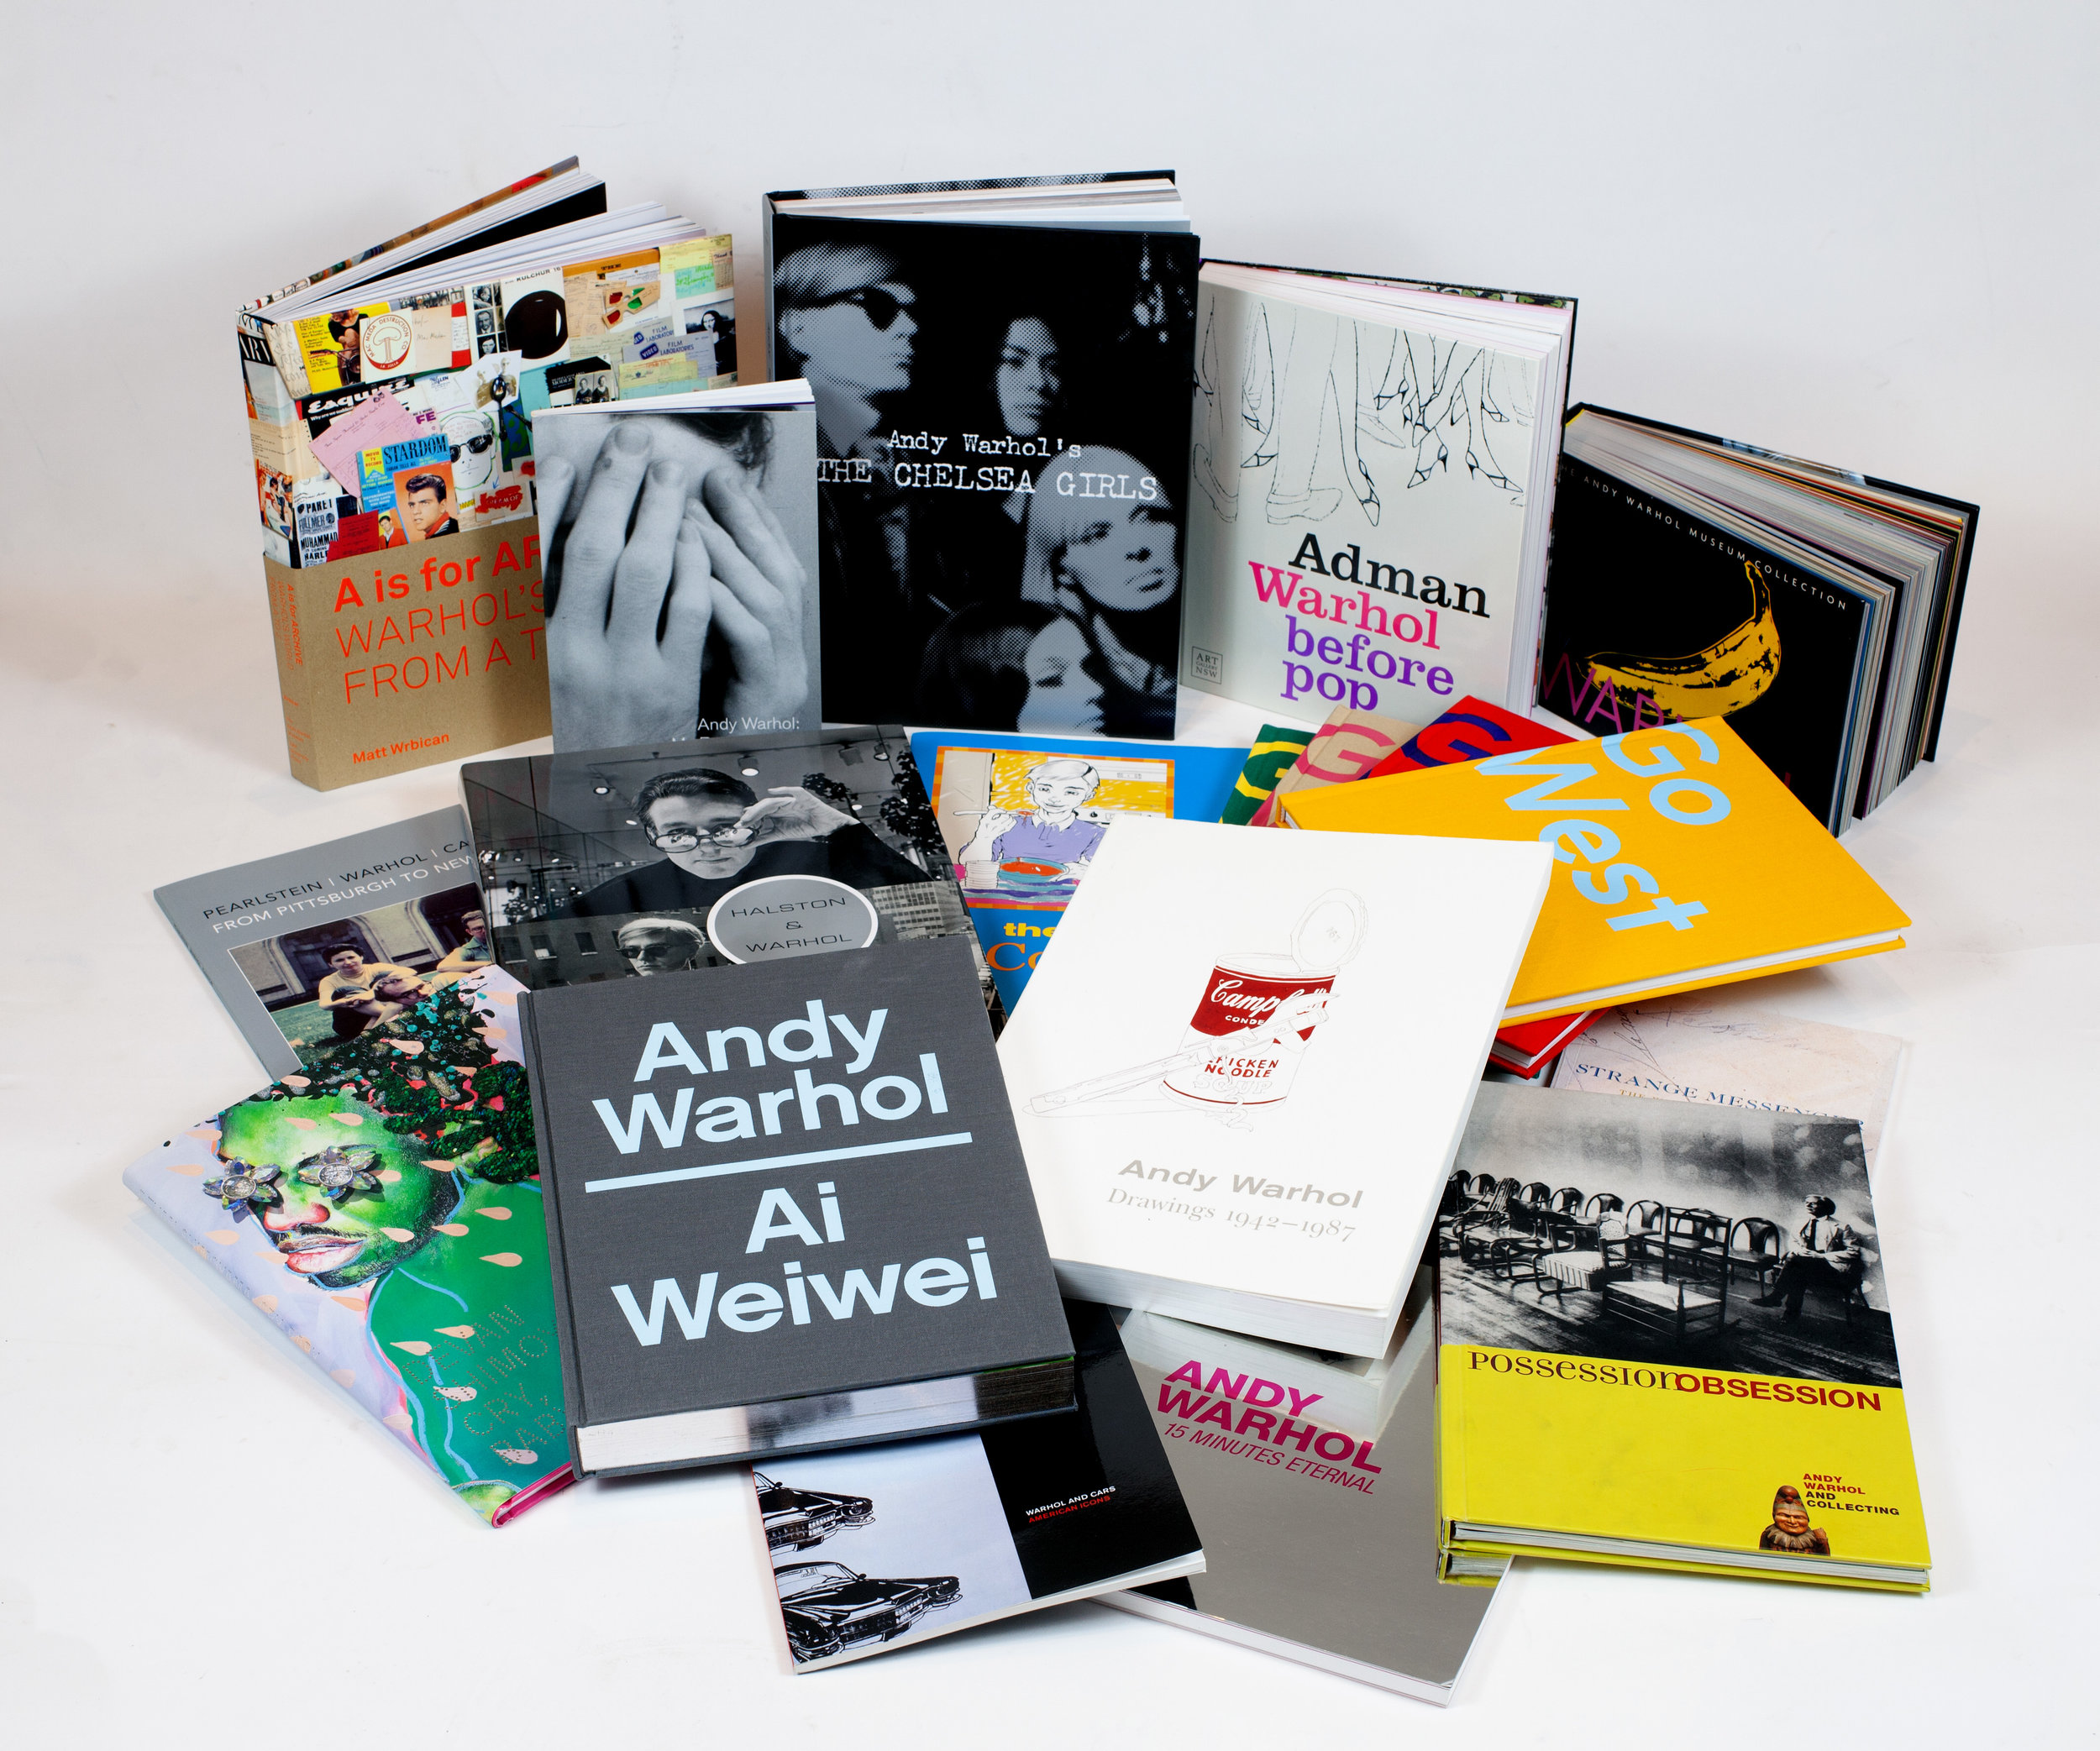 Publications produced by or in collaboration with The Andy Warhol Museum. Photograph by Becky Shock